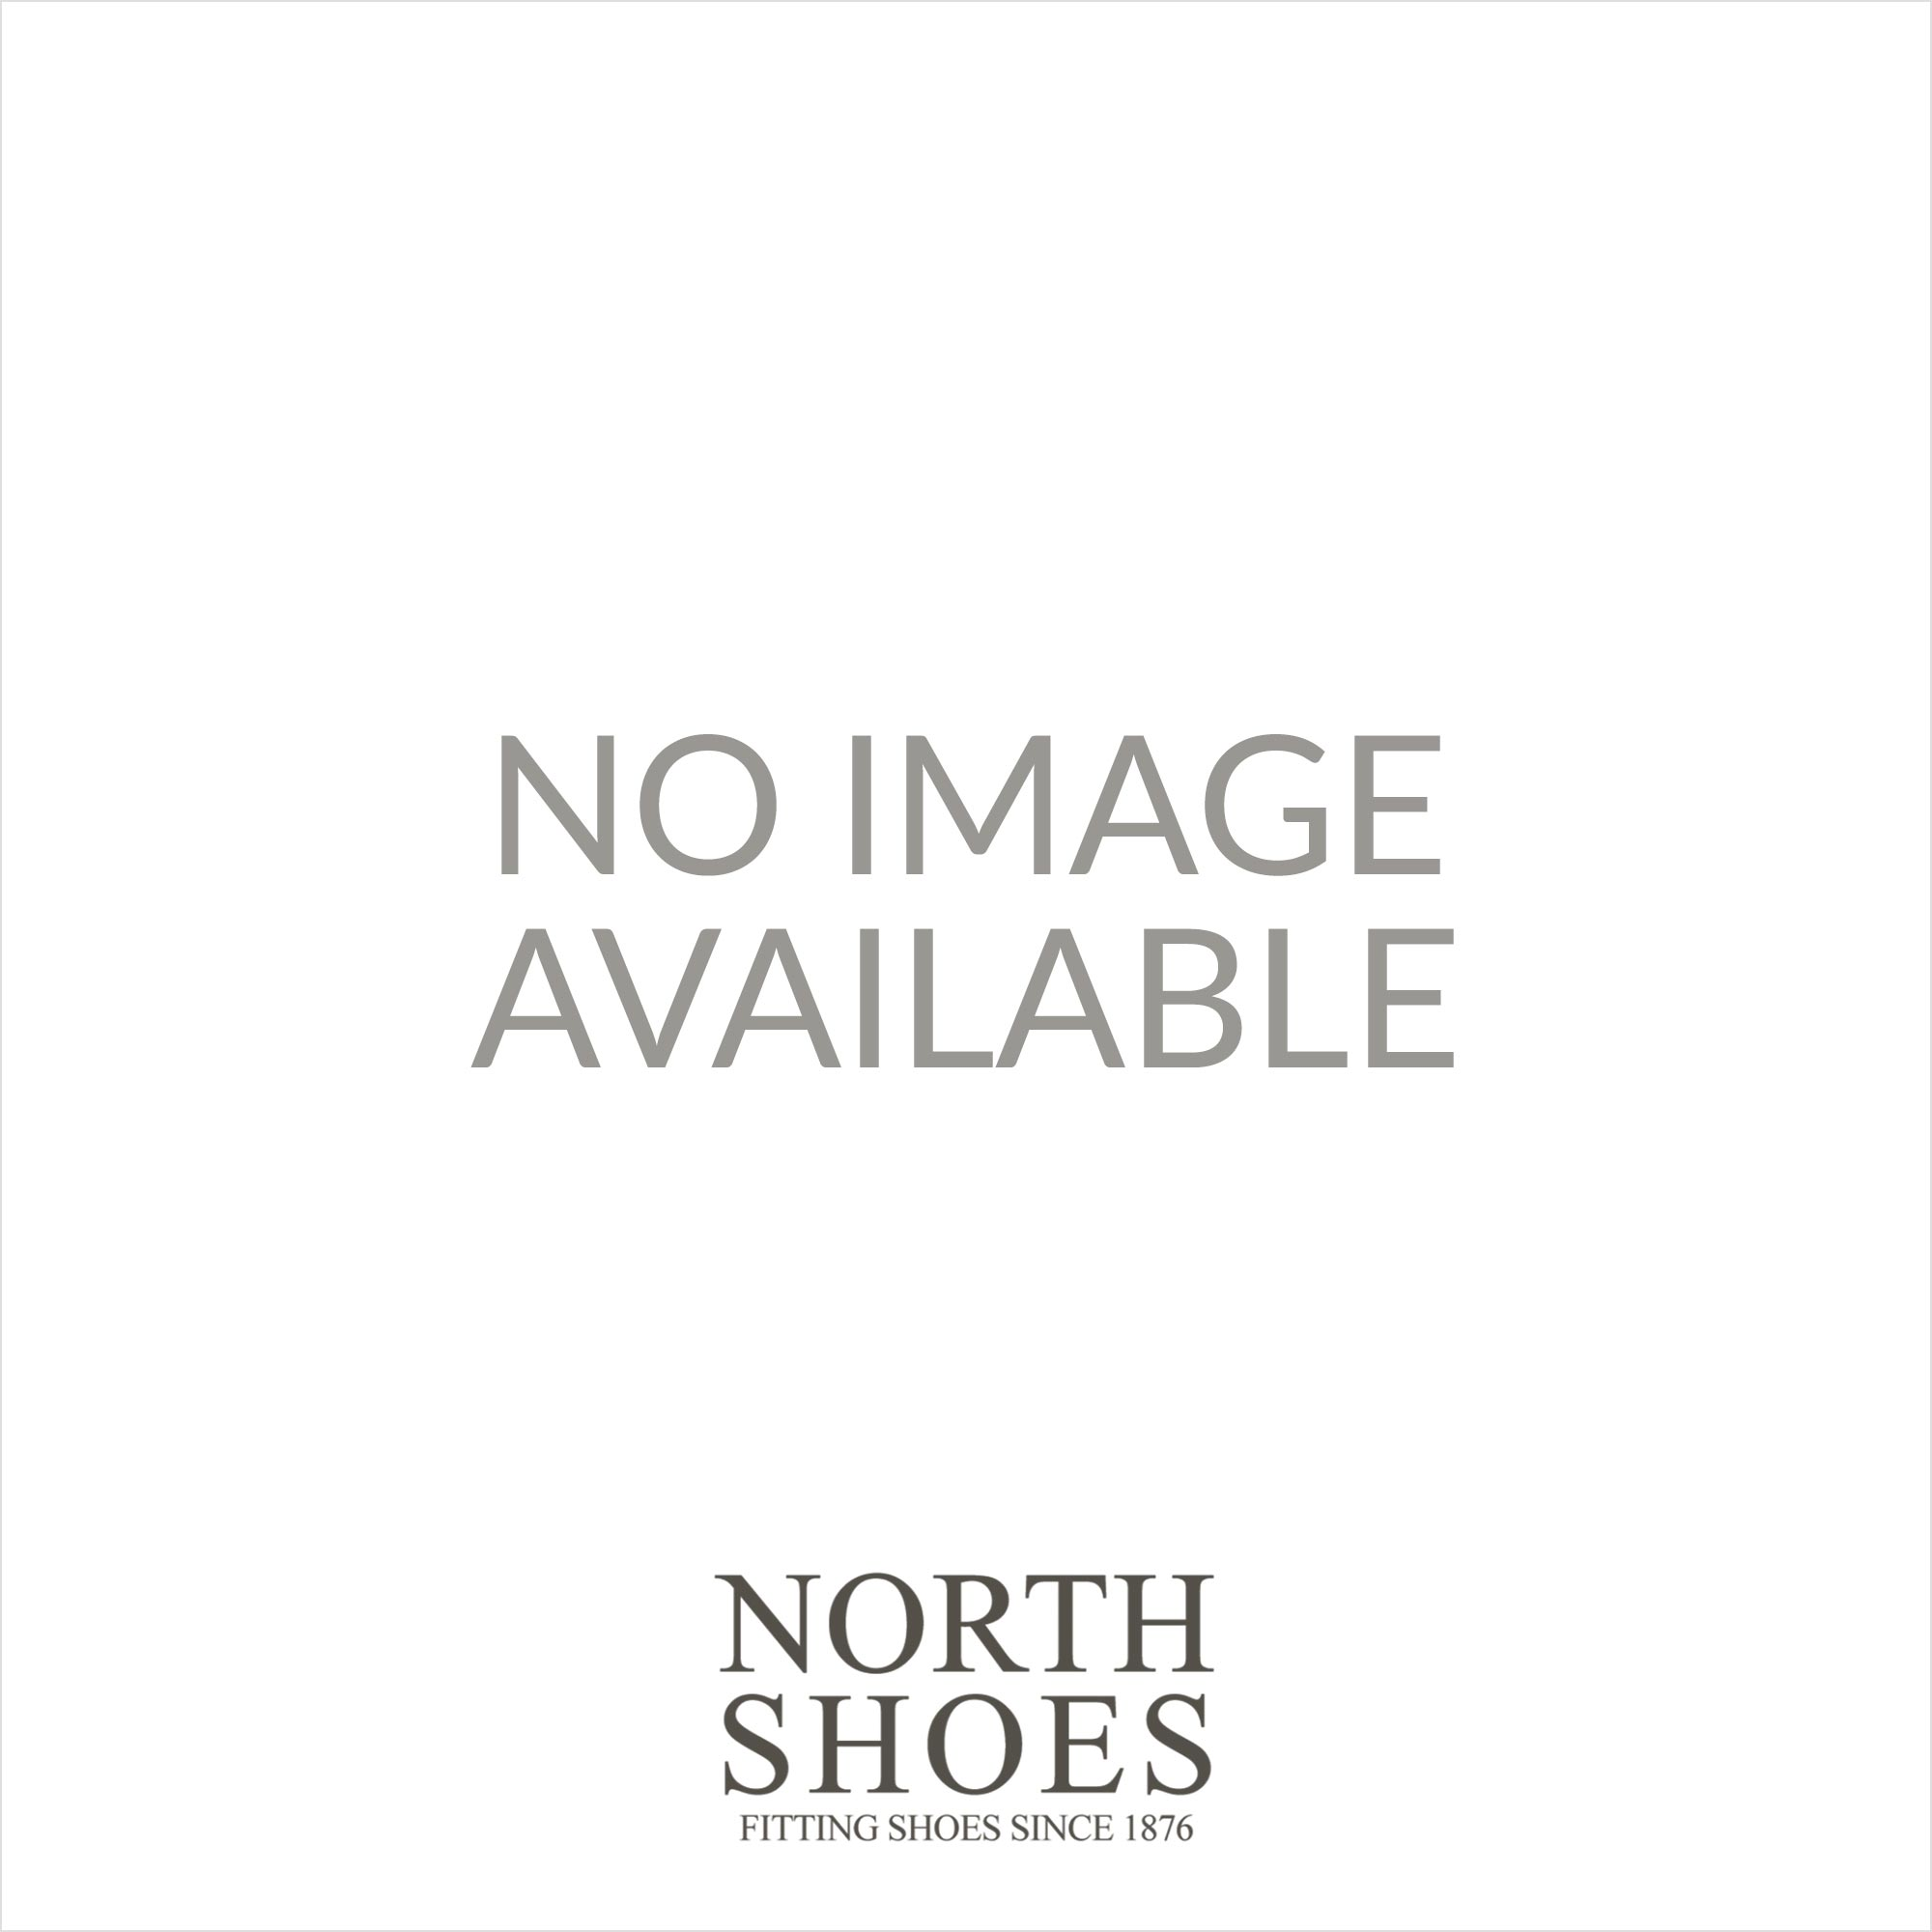 b8e0660f86eb67 Rieker 62470-31 Rose Gold Womens Adjustable Strap Wedge Sandal - Rieker  from North Shoes UK